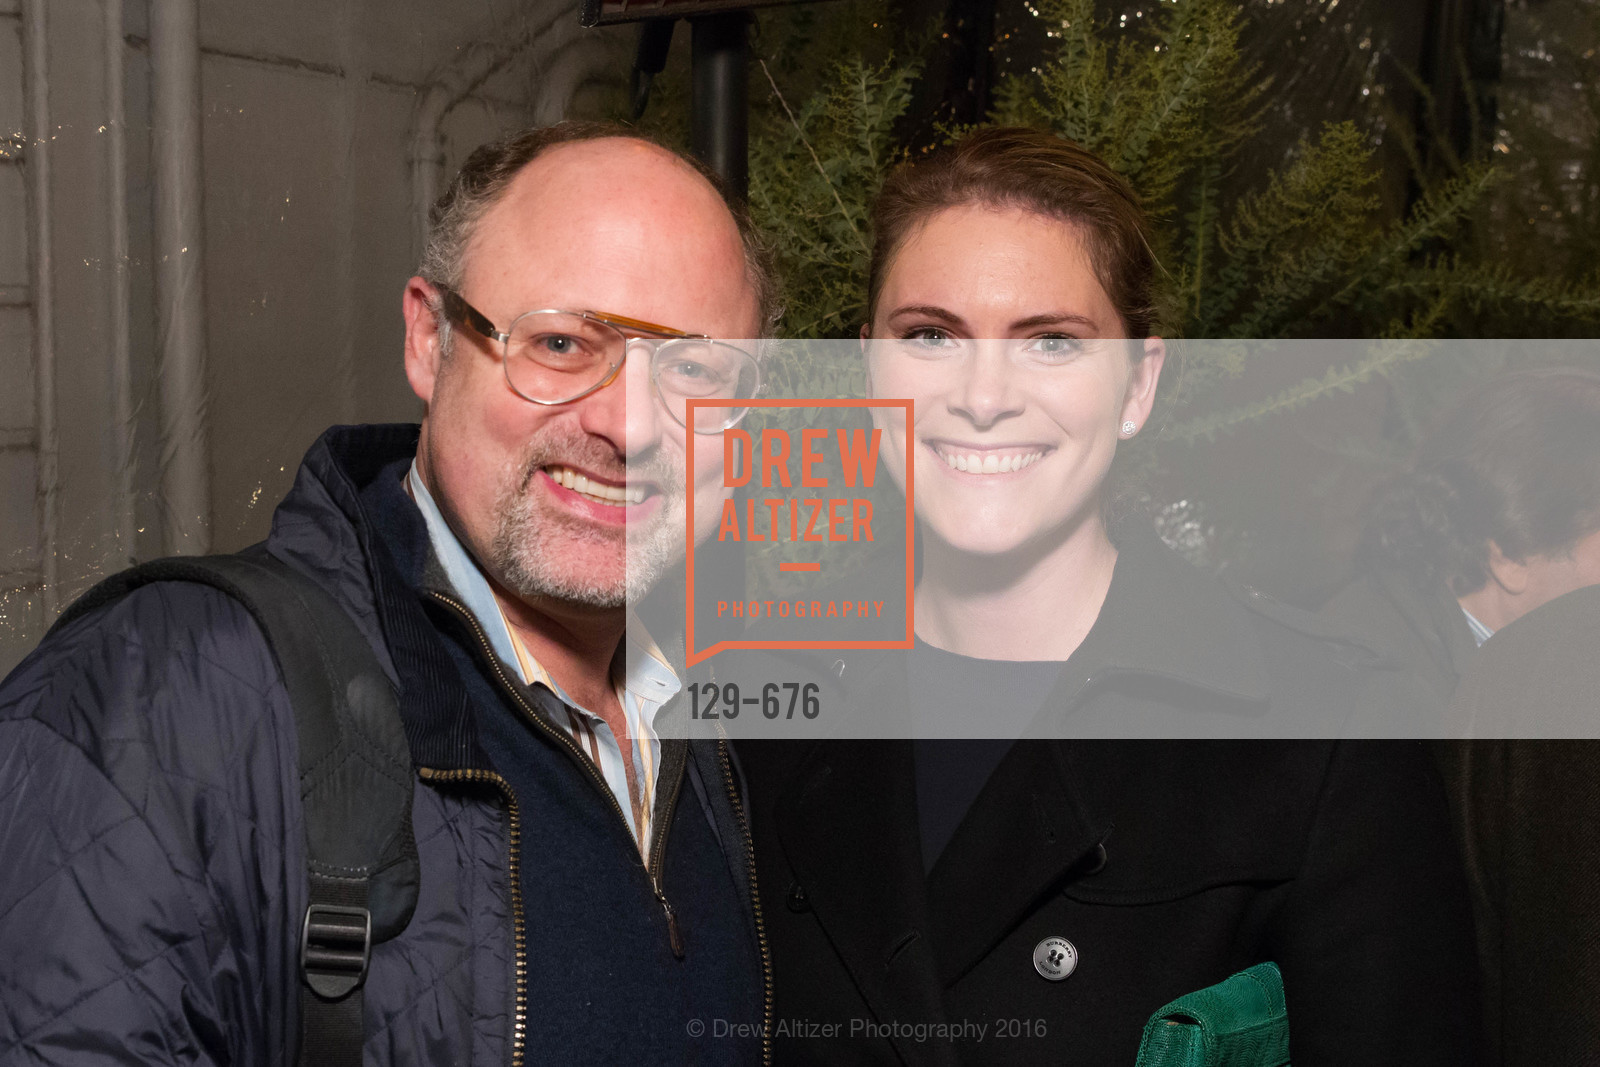 Jon Moscone, Paige Hurada, 500 Capp Street Preview Reception, 500 Capp Street Foundation. 500 Capp Street, January 7th, 2016,Drew Altizer, Drew Altizer Photography, full-service event agency, private events, San Francisco photographer, photographer California